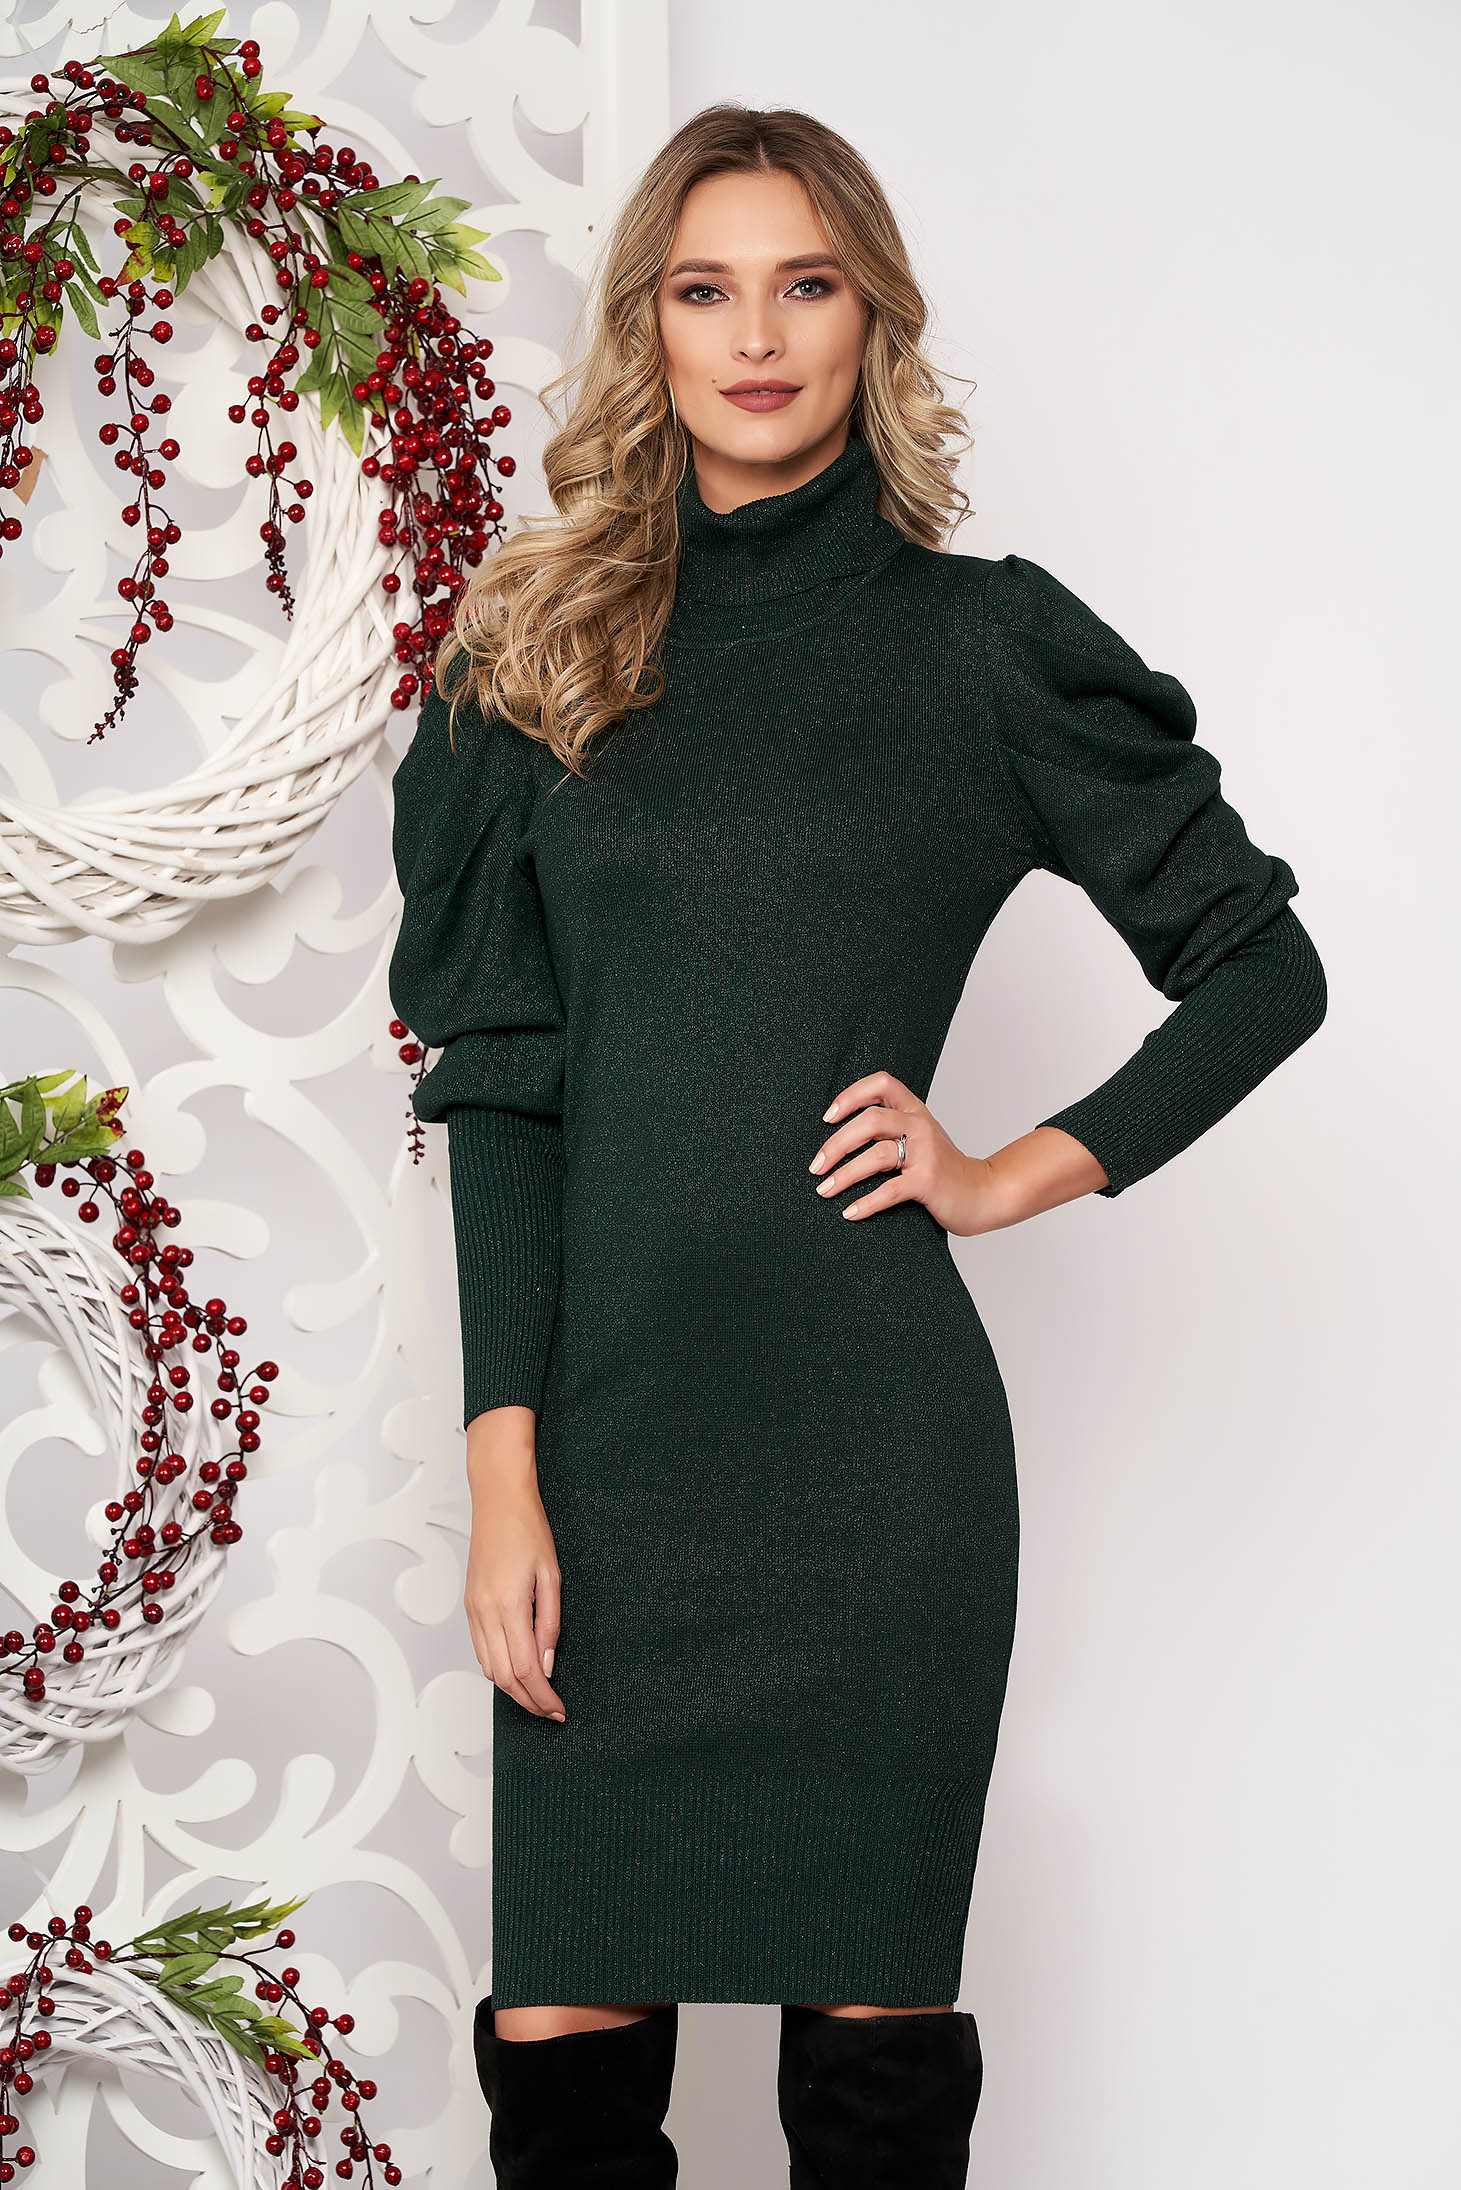 Darkgreen dress long sleeved knitted fabric high collar midi pencil